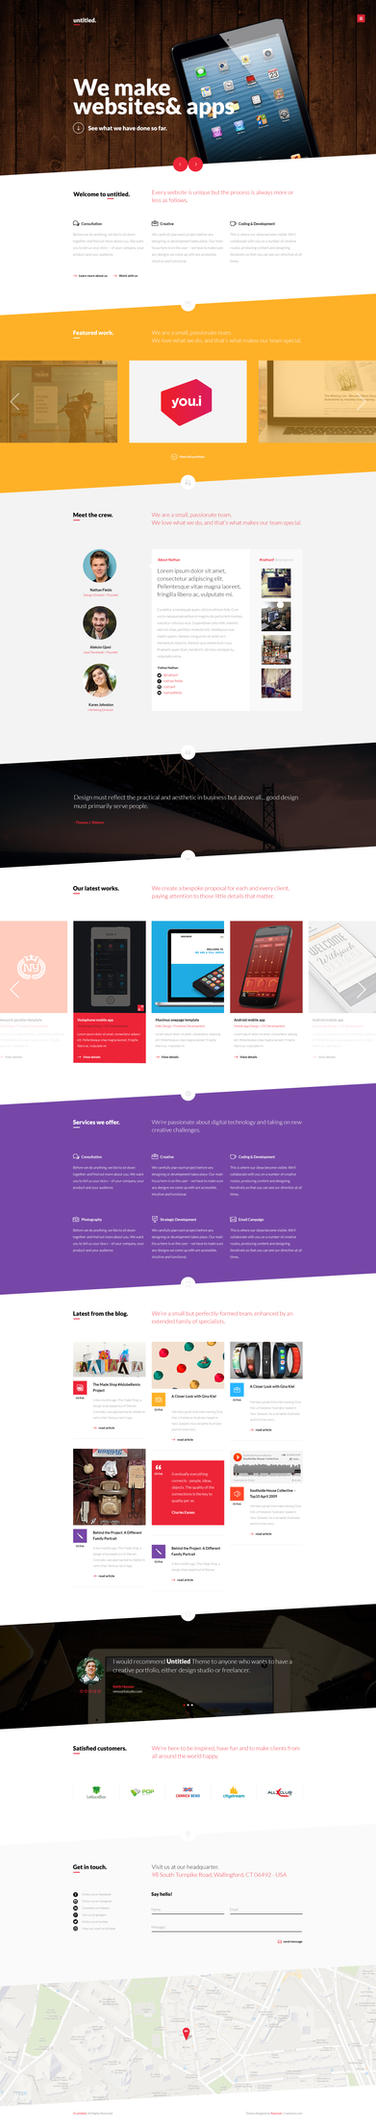 Untitled Web Design by Nas-wd